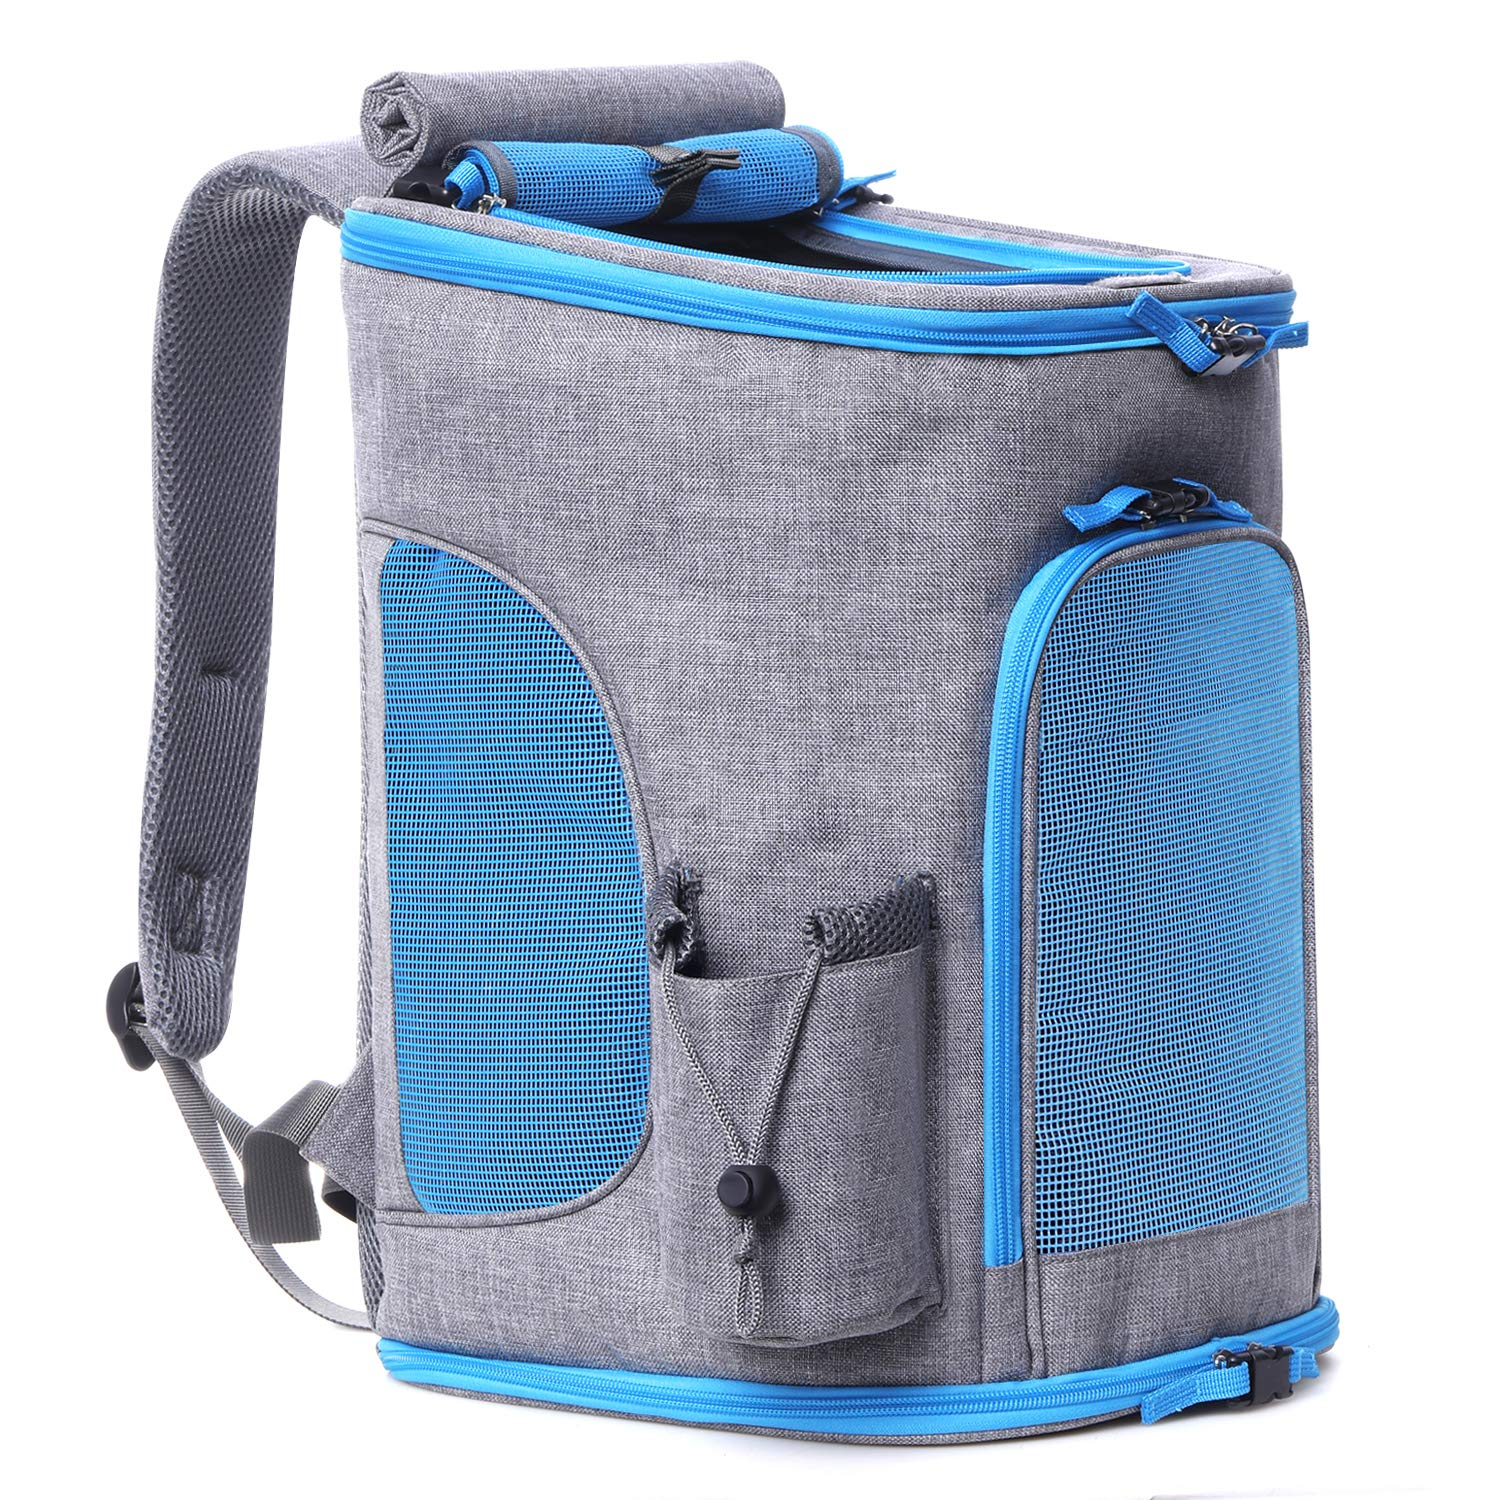 Pet Carrier Backpack for Small Dogs and Cats up to 15LBs+[2019 Upgrade] Airline Approved Soft Sided Dog Carrier Backpack Ventilated,Cushion Back Support for Travel, Hiking, Walking